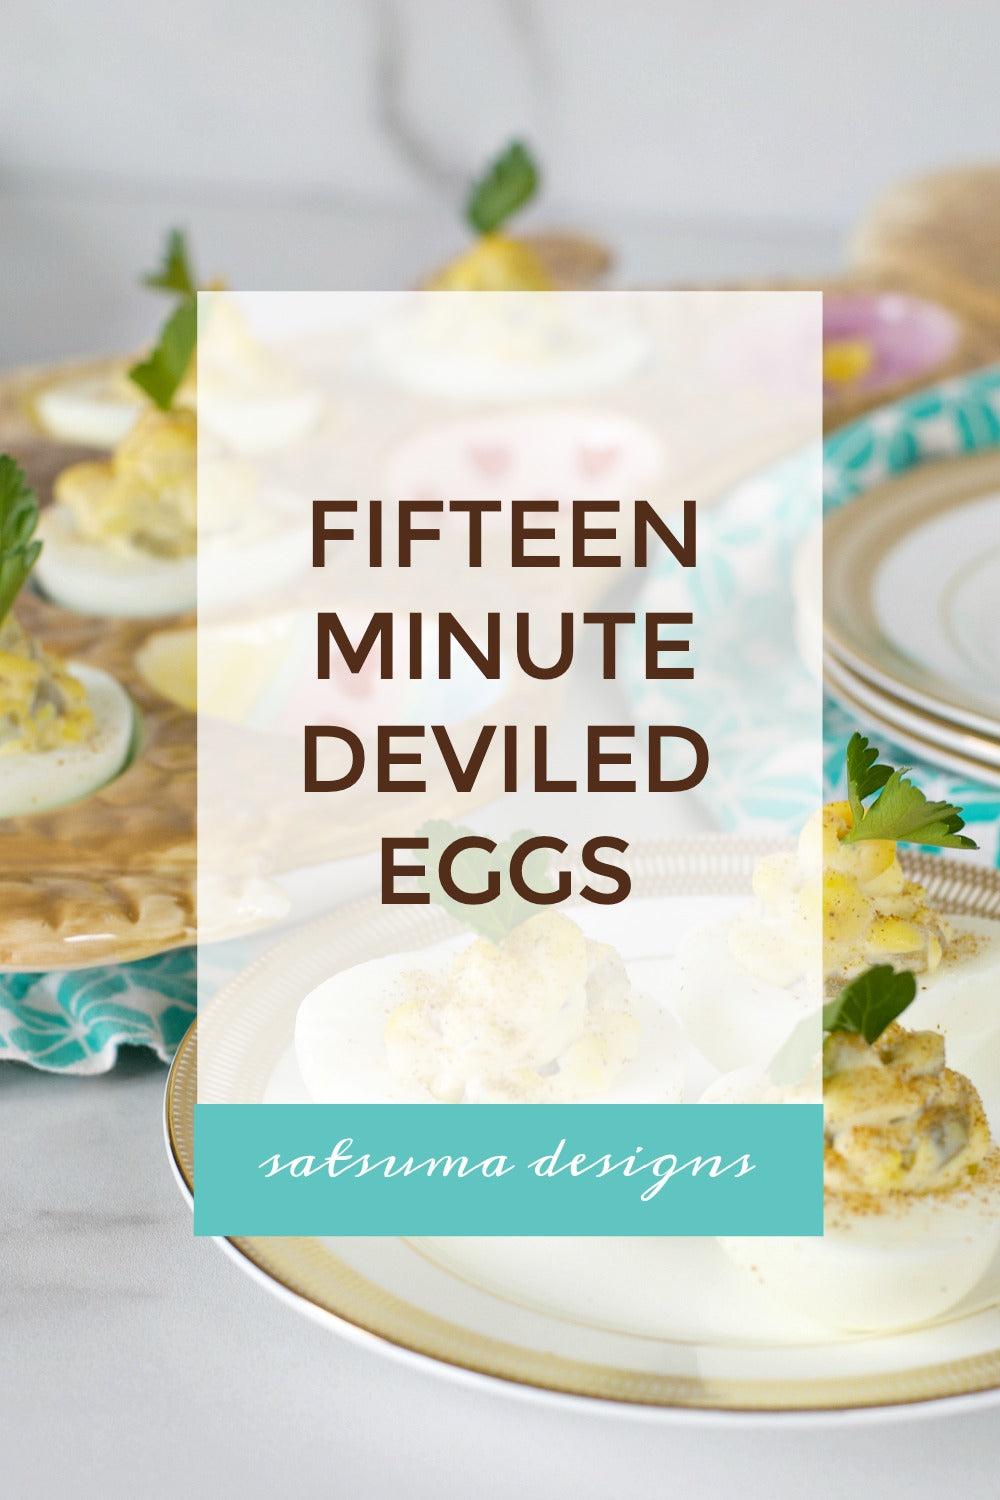 15 Minute Deviled Eggs Recipe